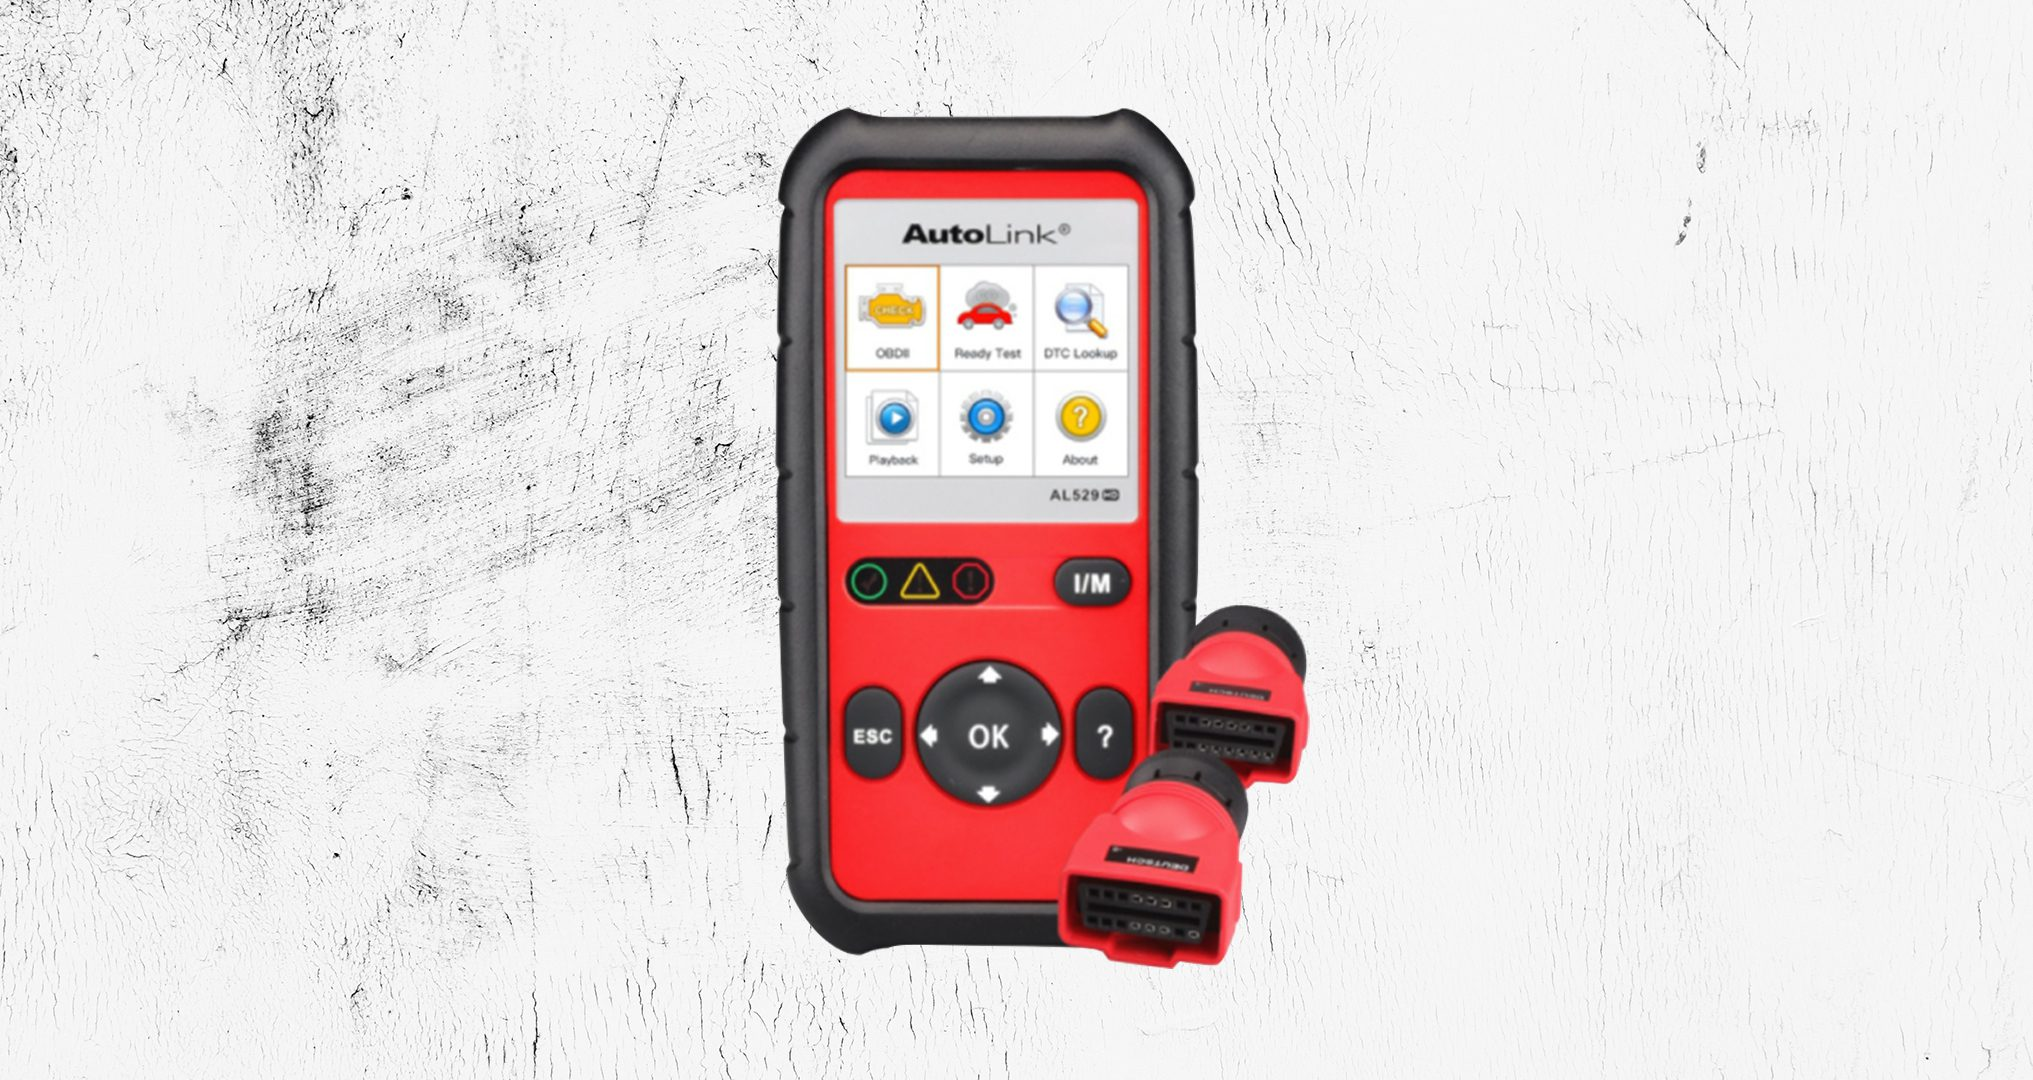 scan tool from Autel